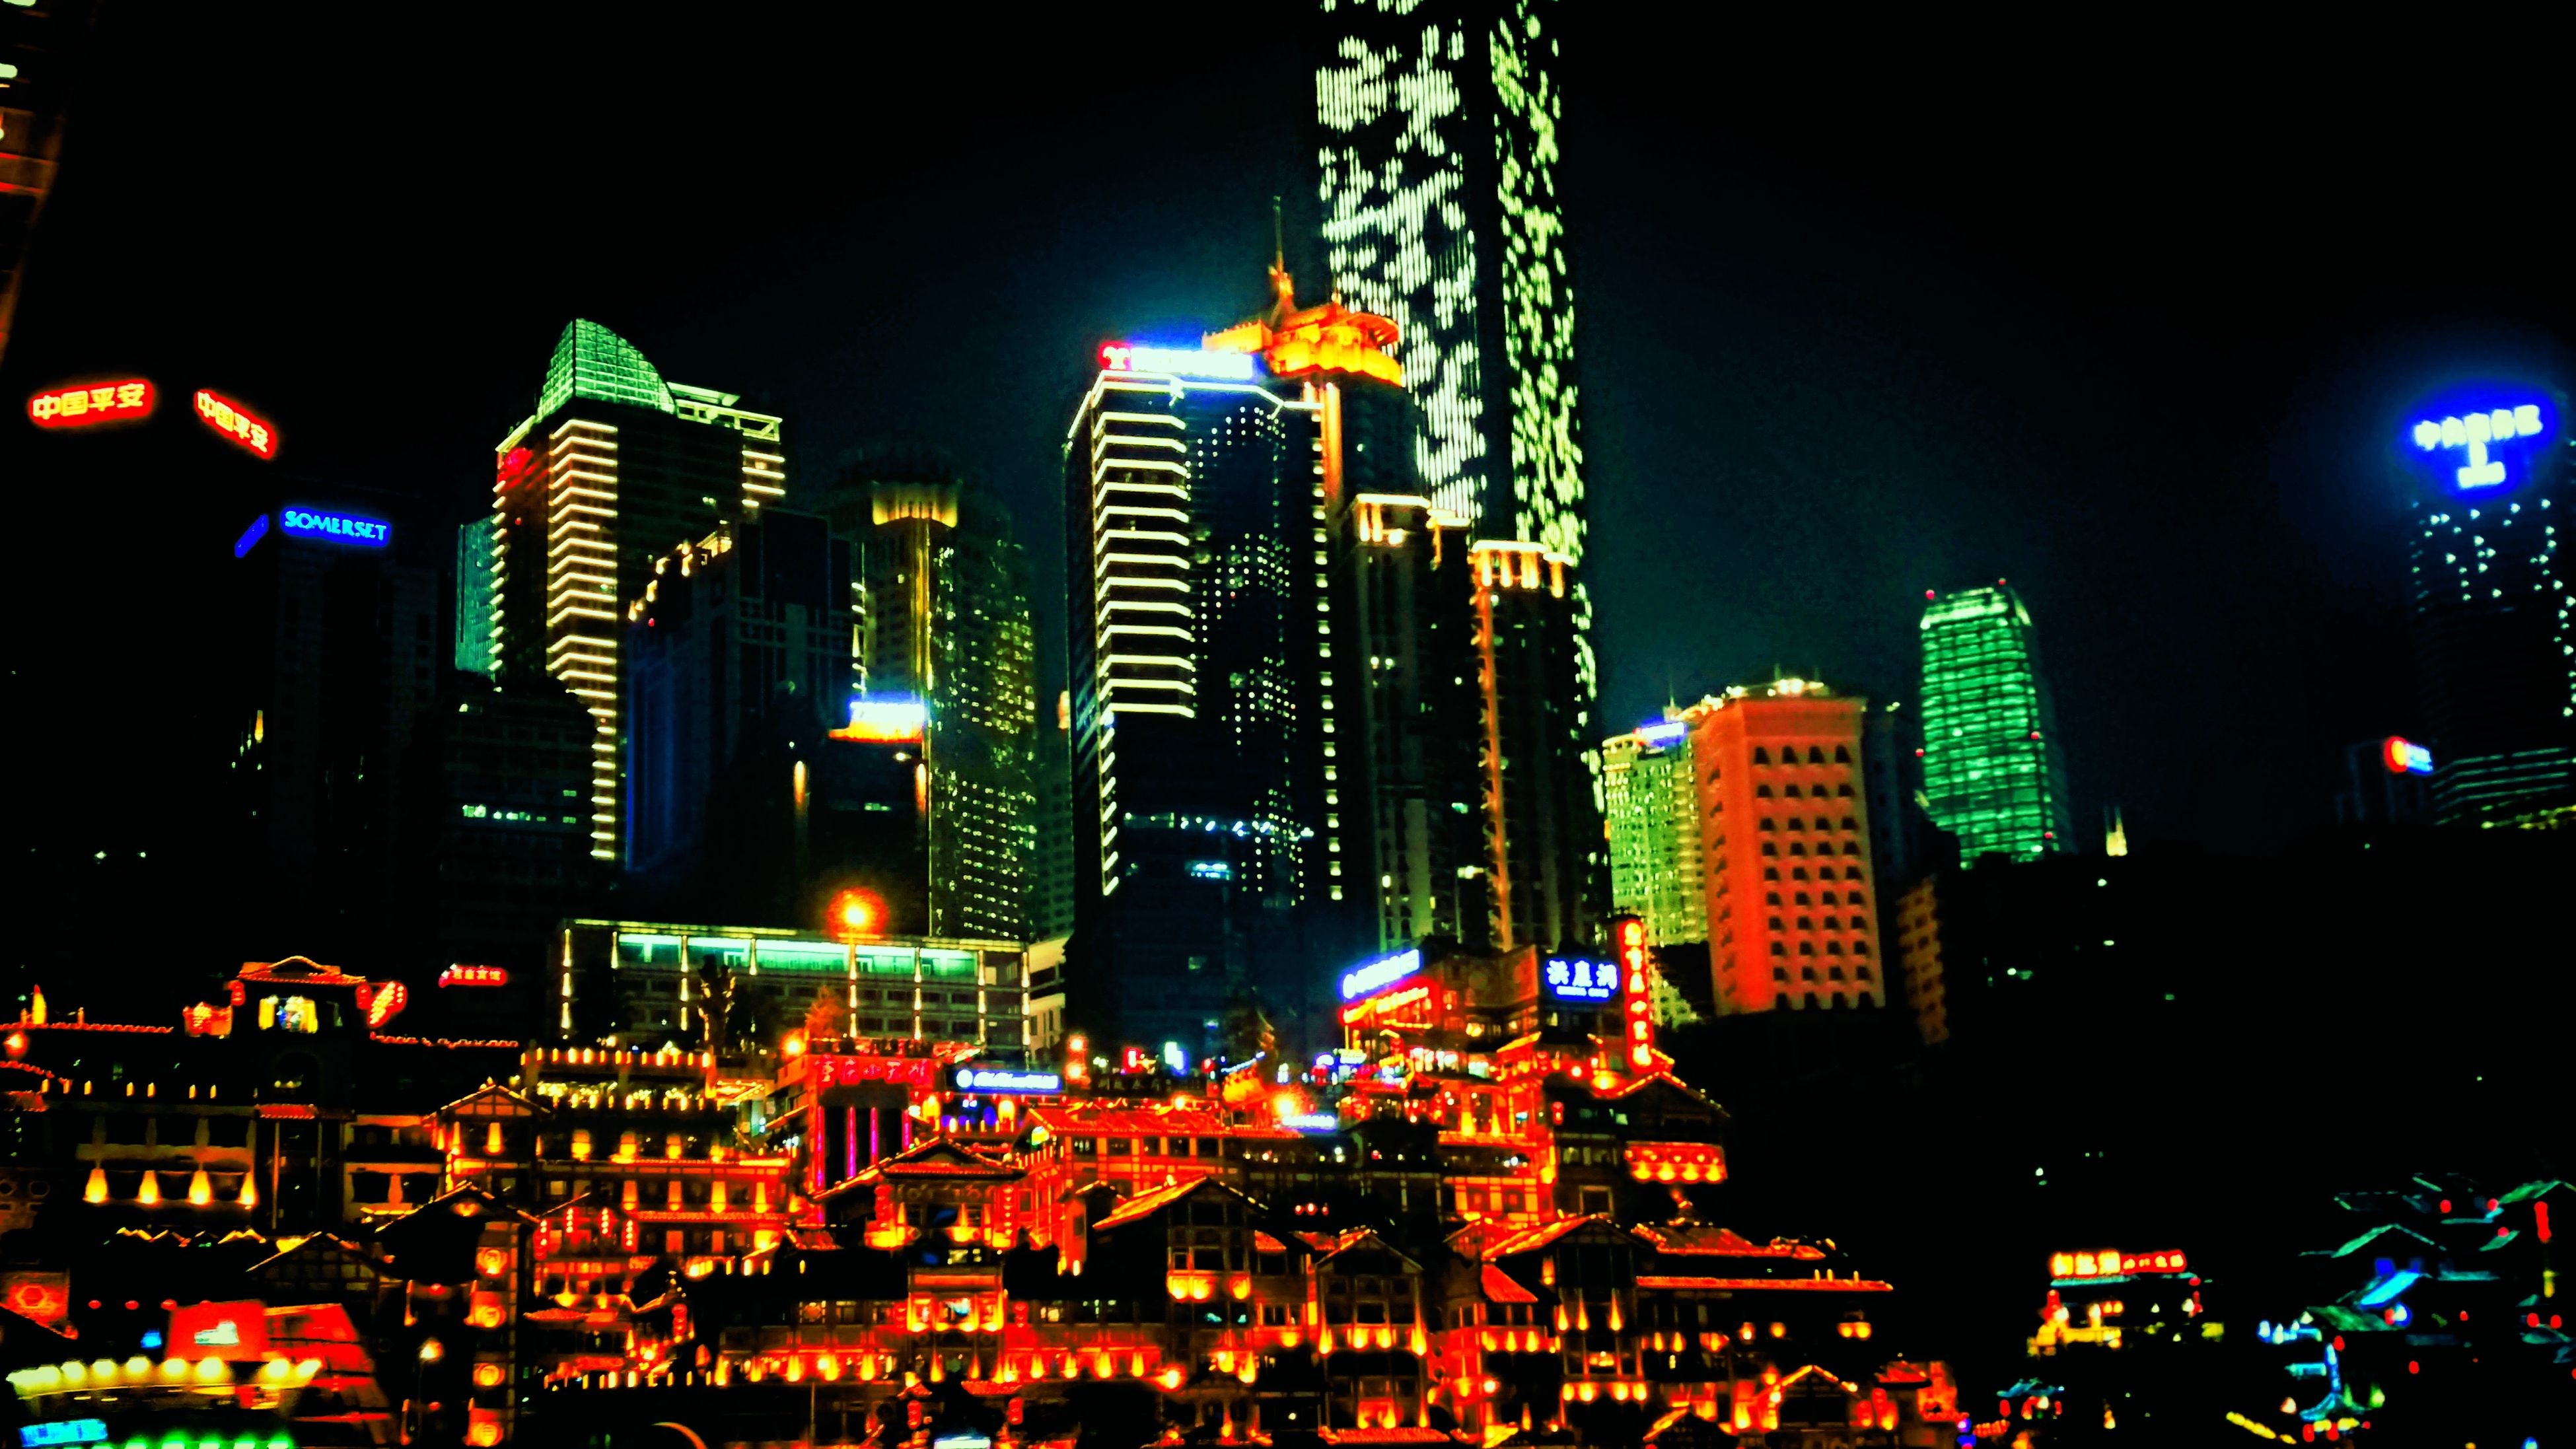 city, illuminated, skyscraper, night, building exterior, architecture, city life, travel destinations, nightlife, urban skyline, city street, multi colored, outdoors, cityscape, built structure, sky, no people, motion, modern, downtown district, neon